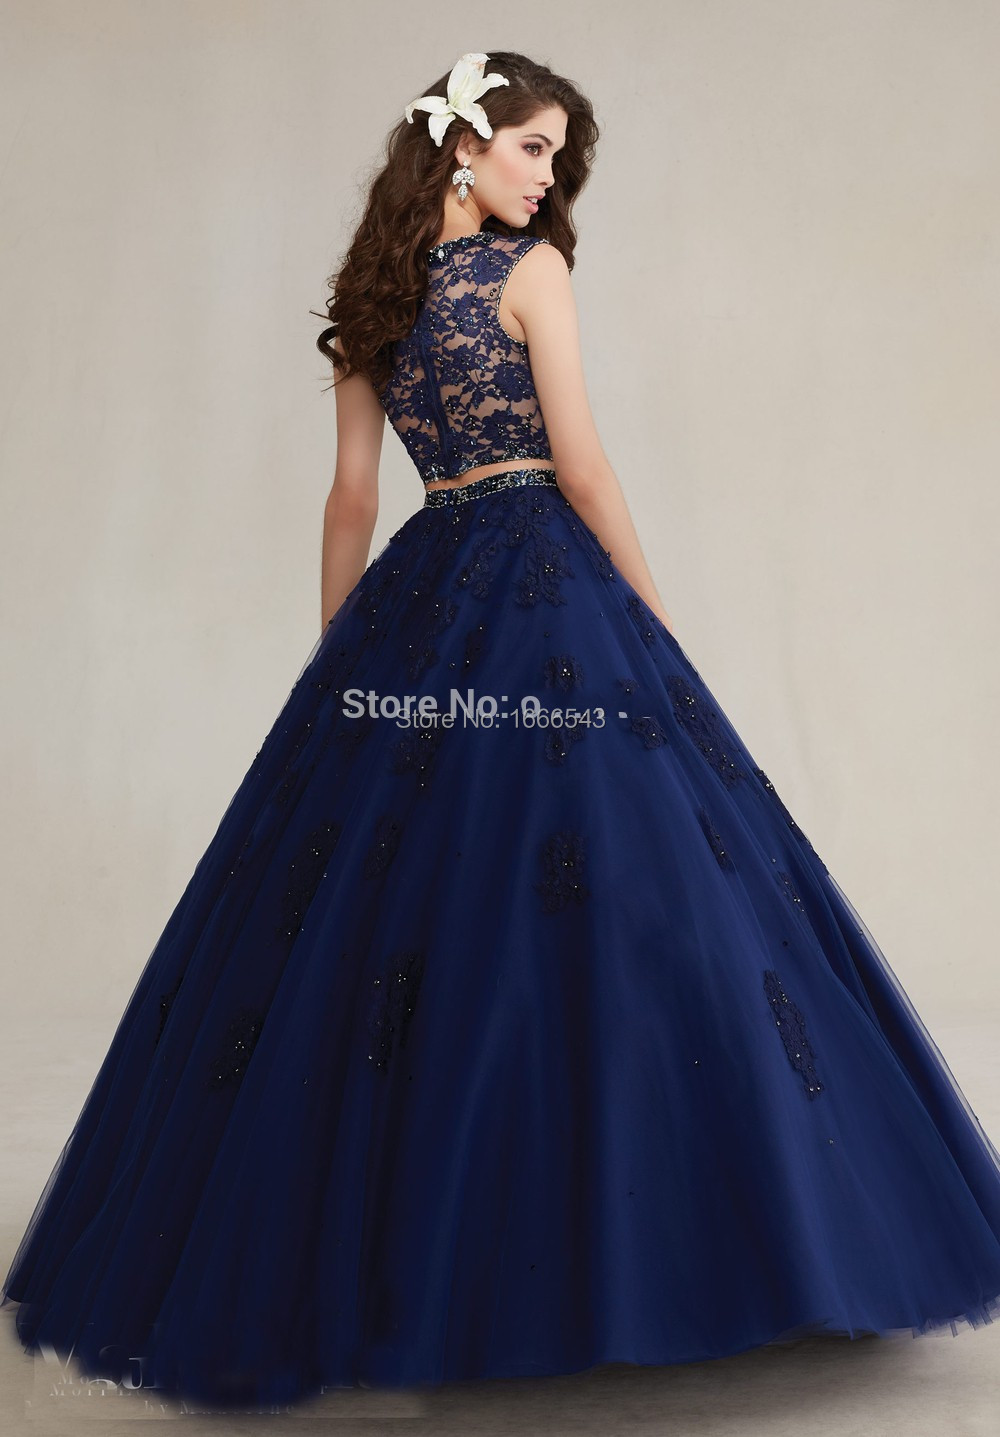 27e29d8090 2016 High Neck Beaded Lace Appliques Prom Dress Navy Blue Sweet 16 ...